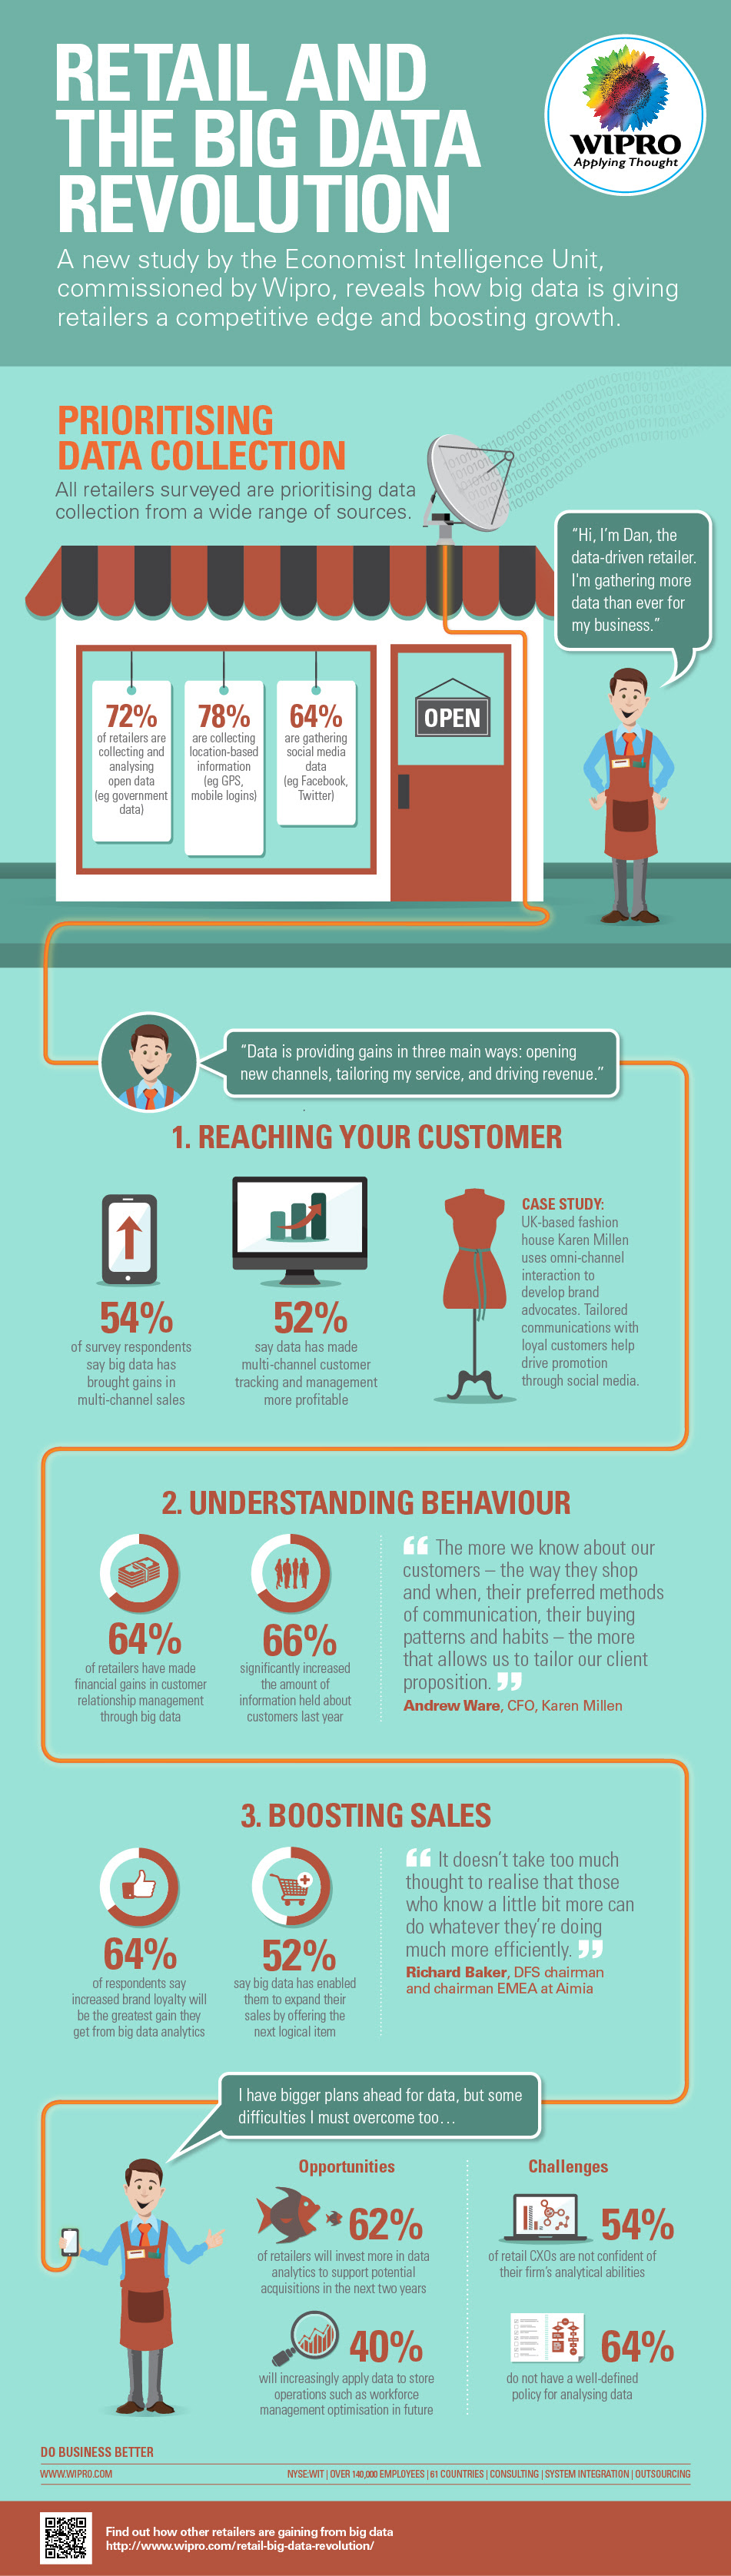 Infographic: Retail And The Big Data Revolution